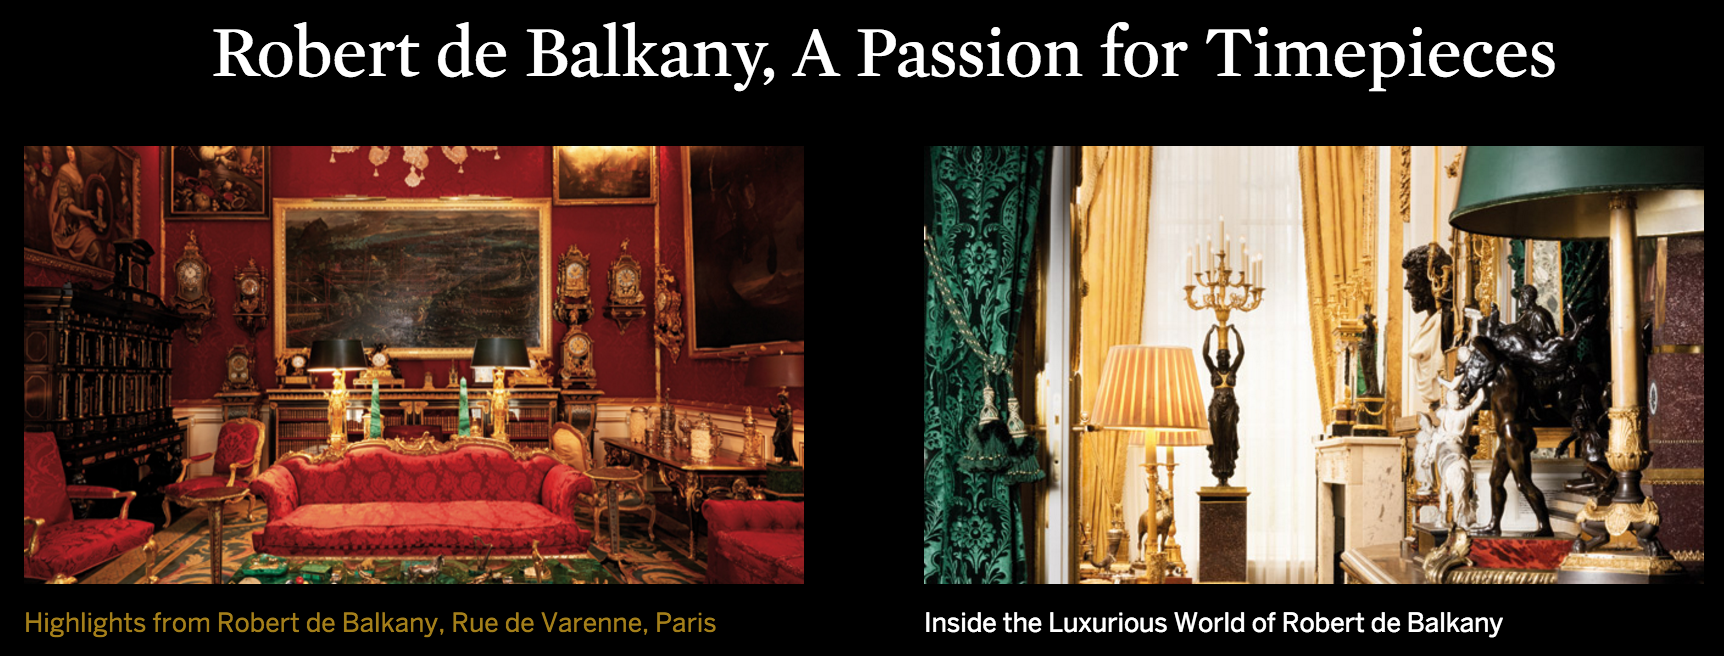 Highlights from Robert de Balkany